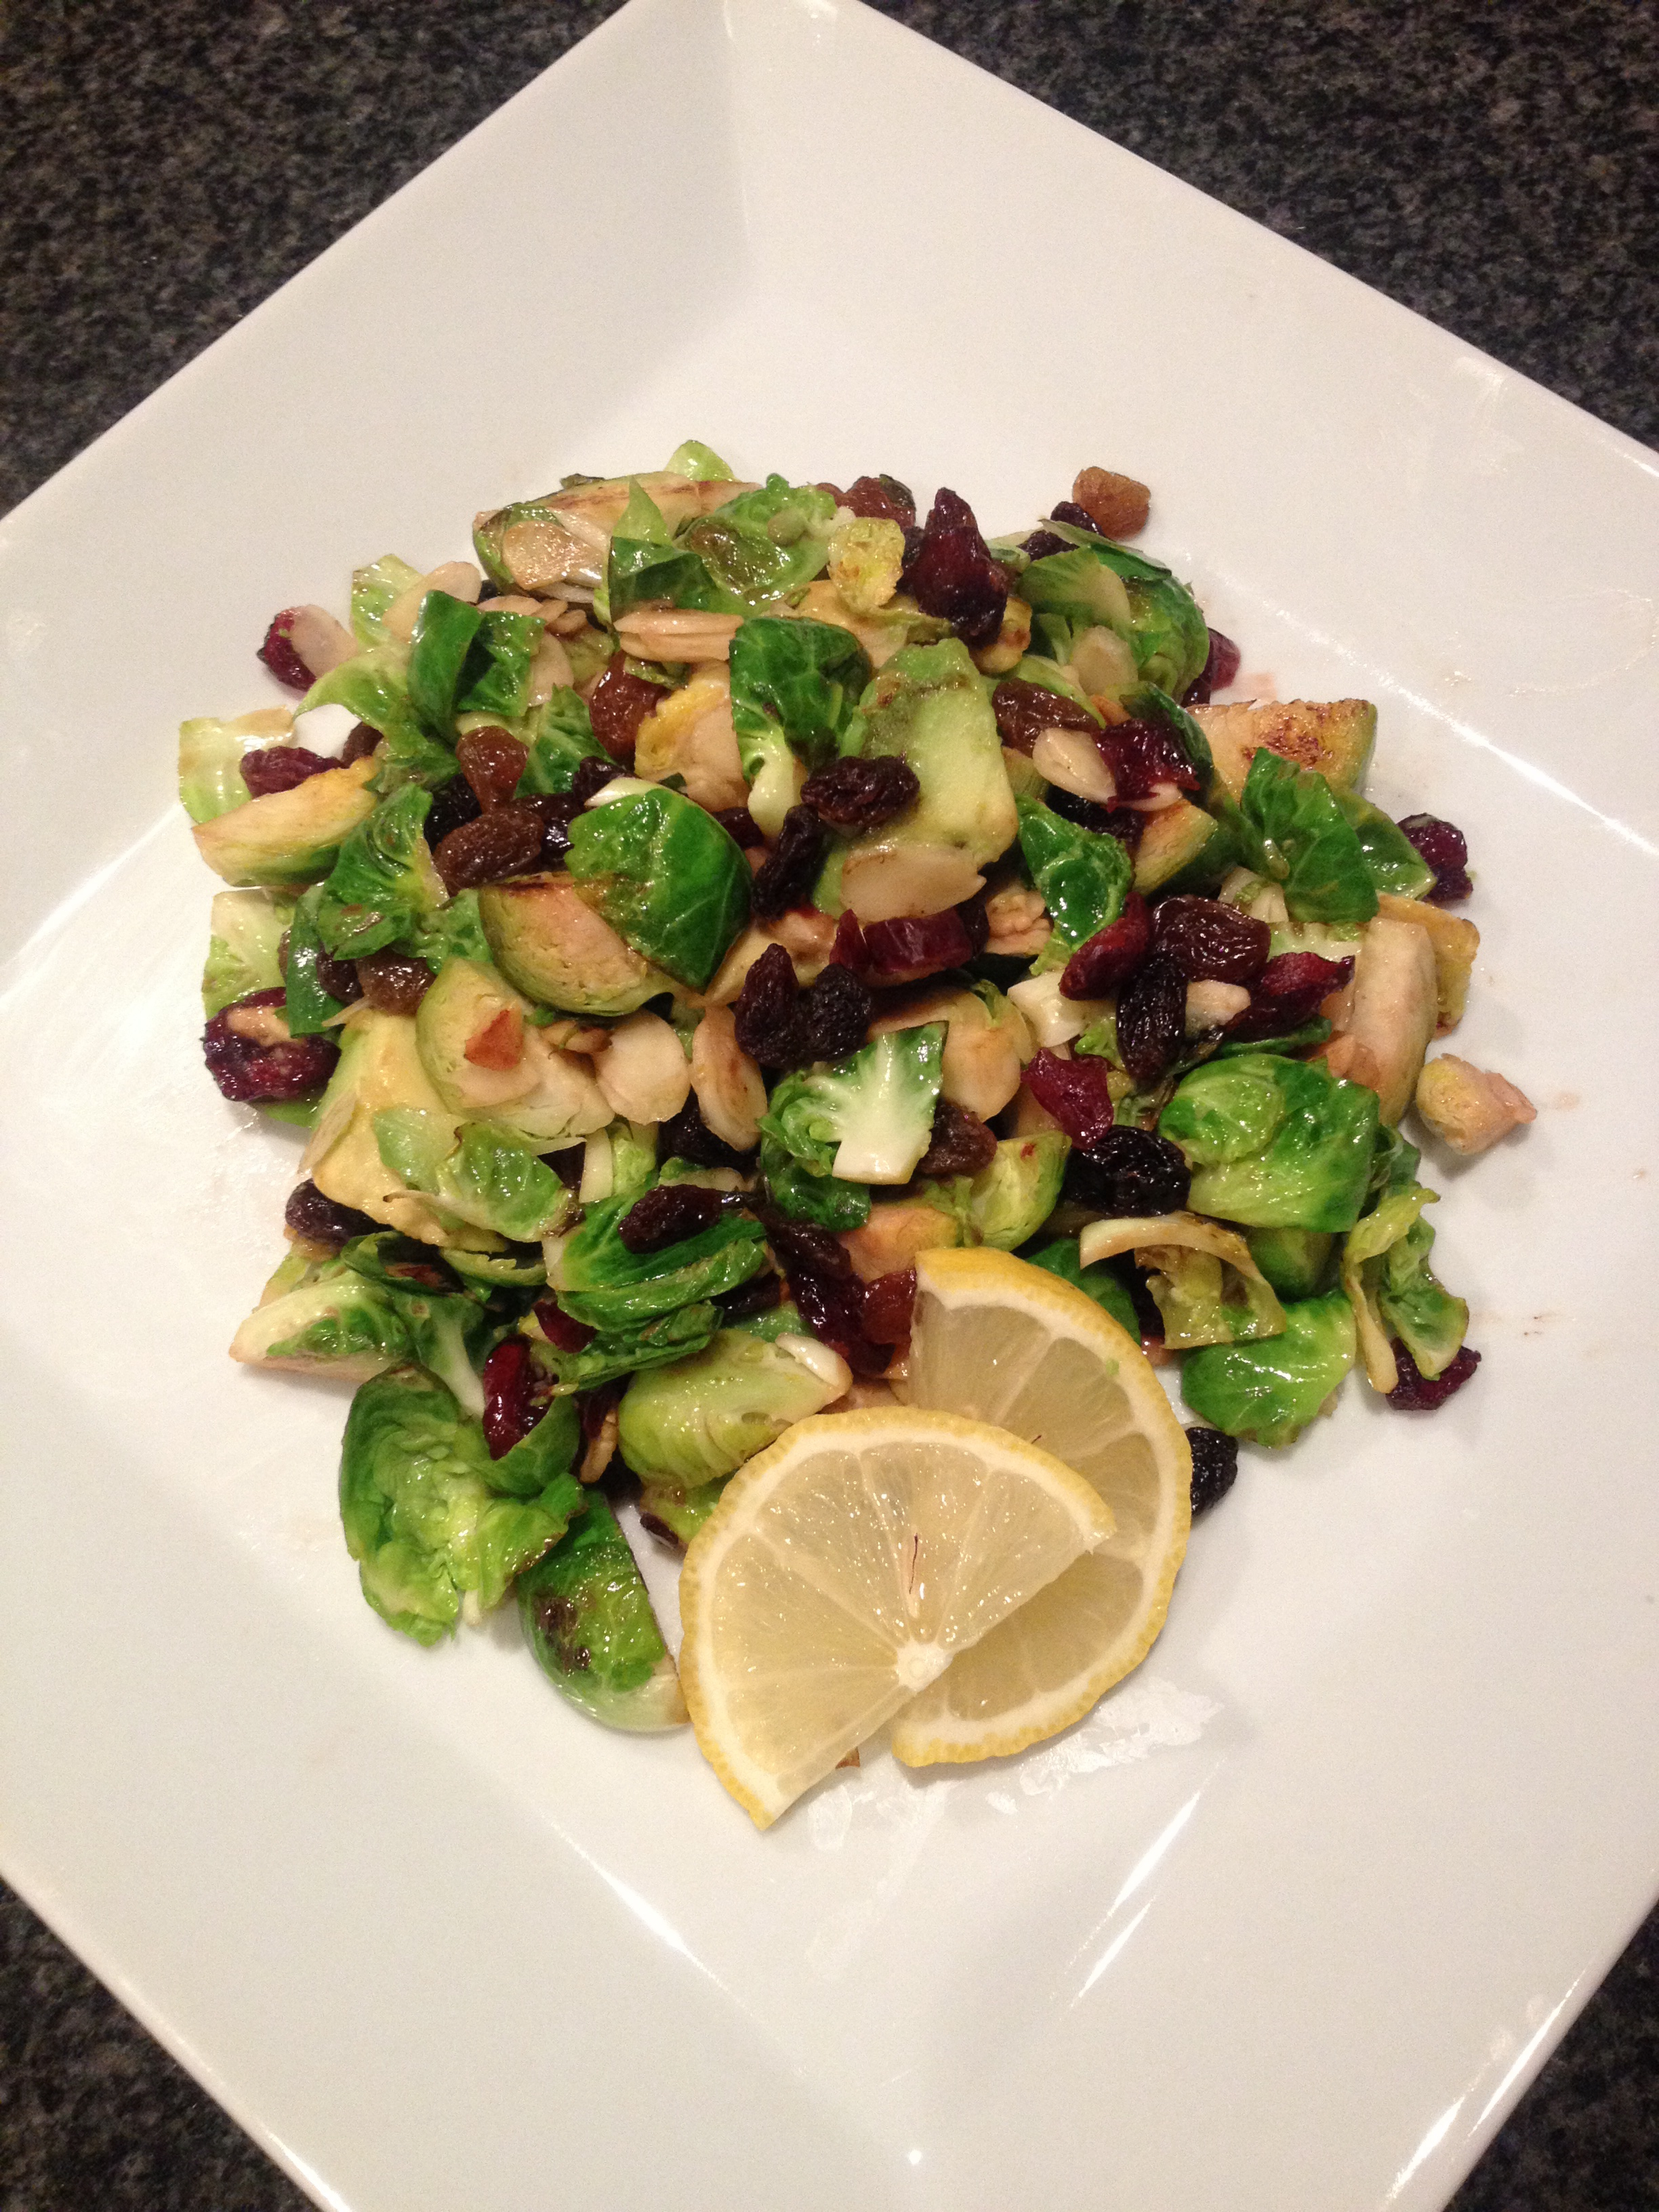 Recipe for Brussel Sprout Salad